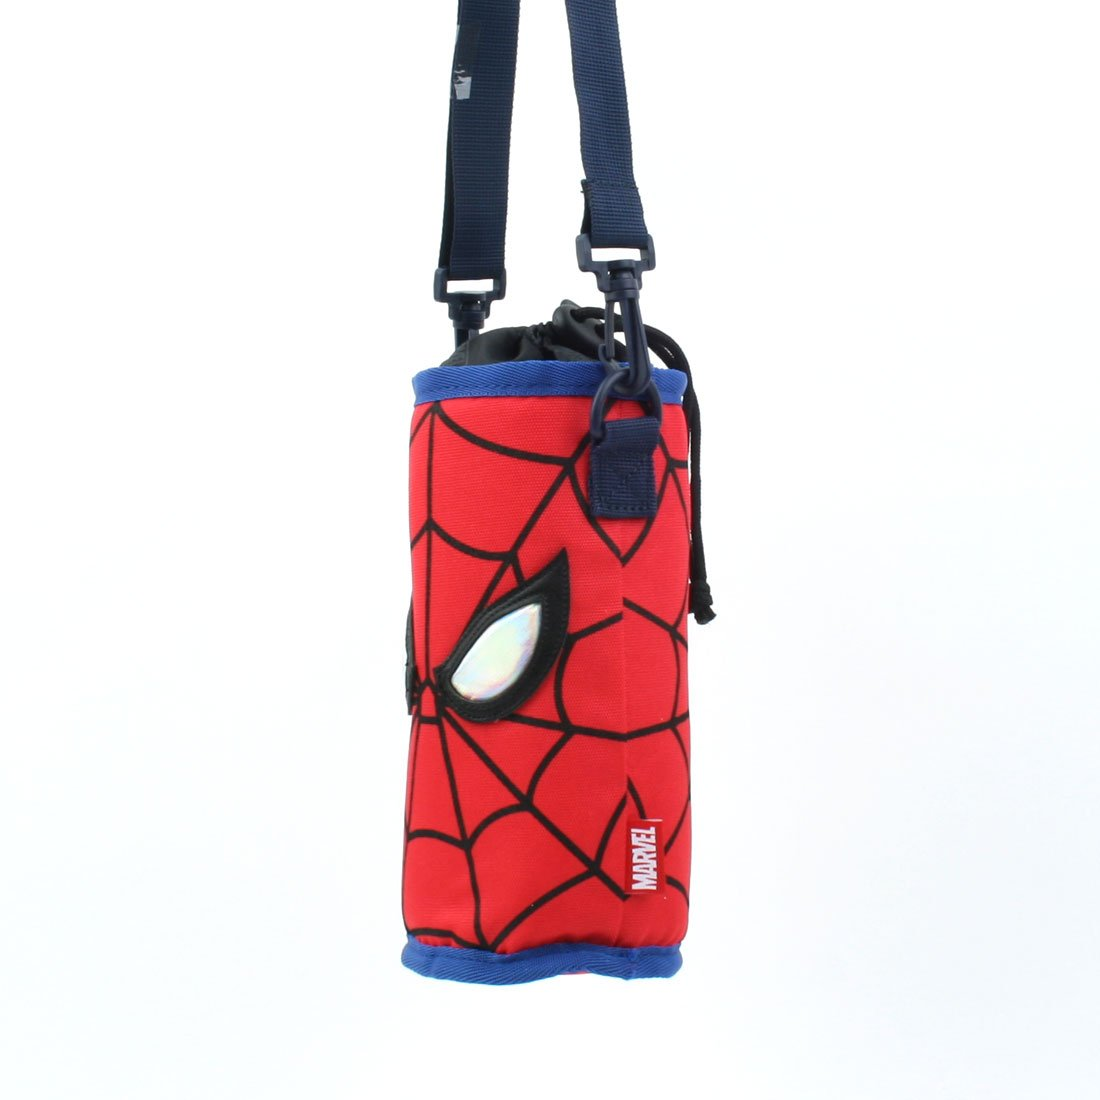 WINGHOUSE x Marvel Spider-Man Water Bottle Sleeve Bottle holder Cross body Bag with Shoulder Strap for Pre-Teen by WINGHOUSE (Image #2)